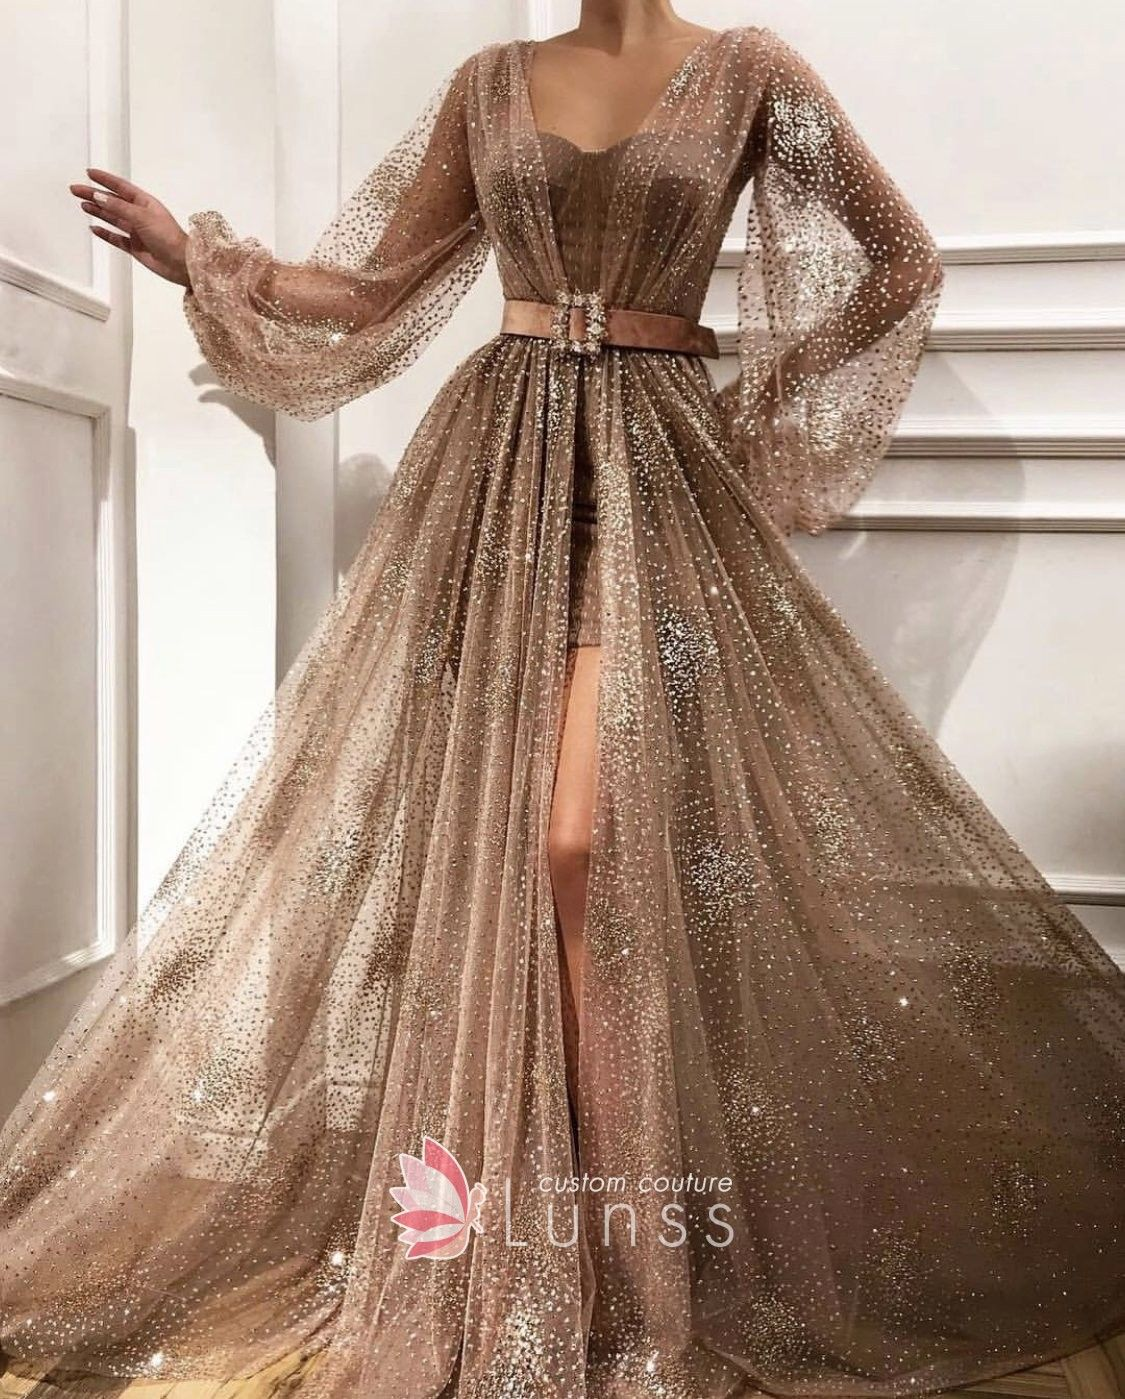 c8f8f3d8692e Glittery beaded light brown coffee sheer tulle overlay evening gown with  handmade embroidered belt. Sheer long sleeves. Thigh-high slit.